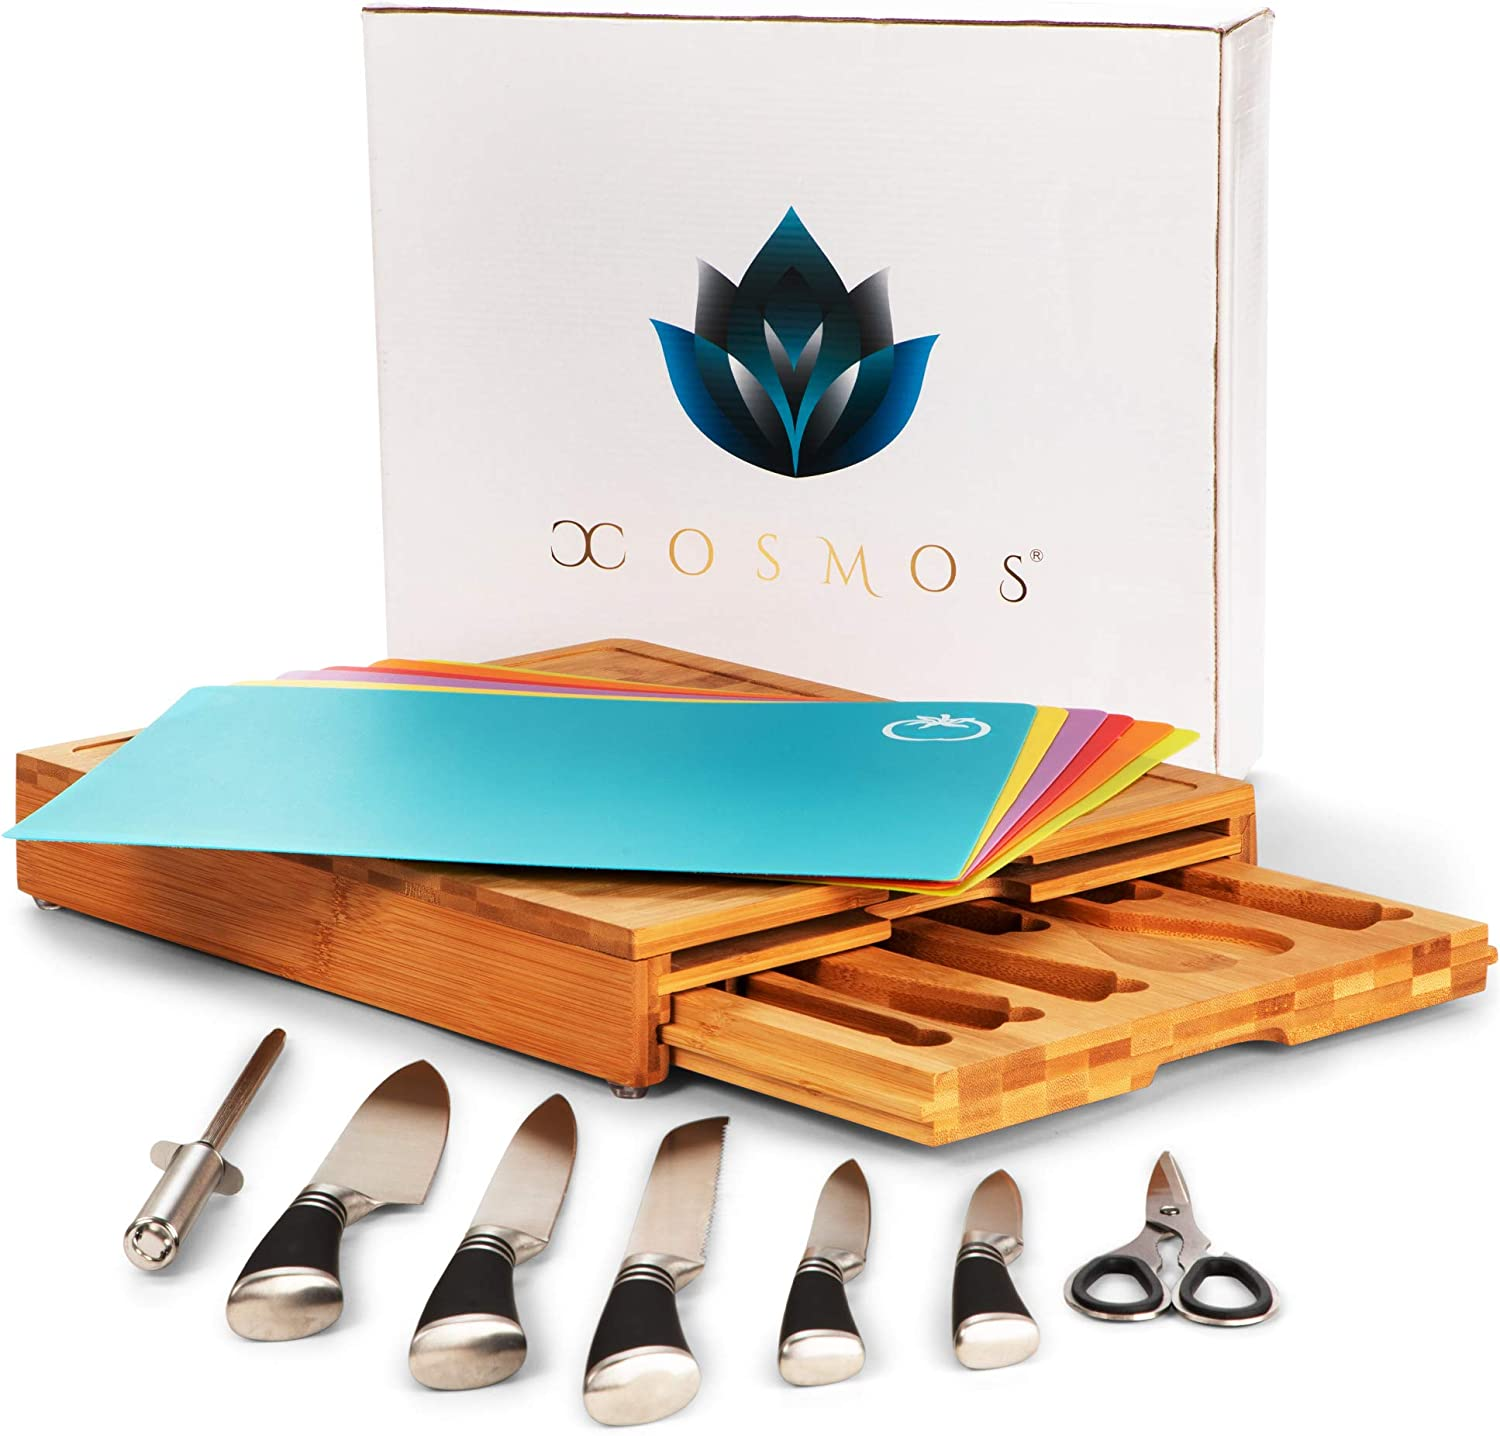 XOSMOS Professional Bamboo Cutting Board with Durable 7 Piece Knife Set and Mats - Premium Chopping Boards, Space Saving Butcher Blocks - Kitchen Accessories, Multifunctional